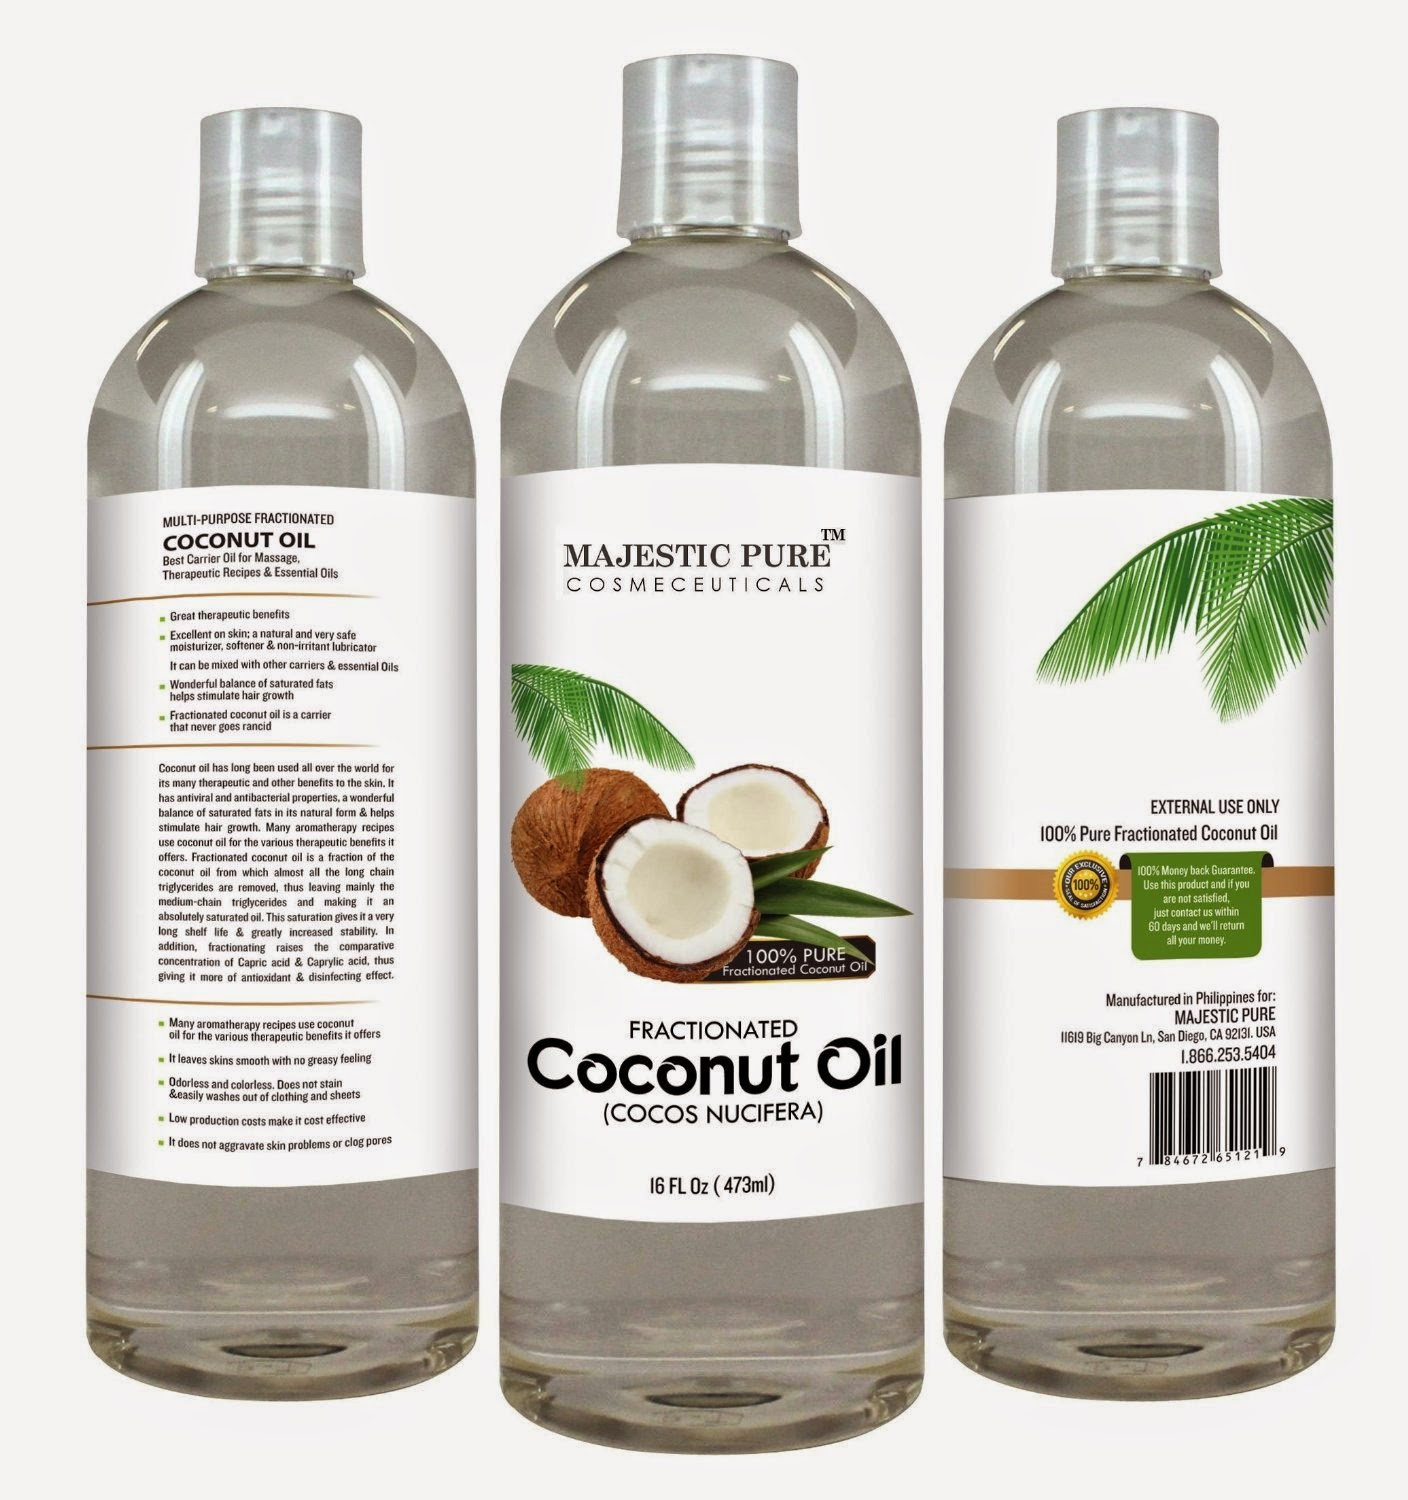 Majestic Pure's Fractionated Coconut Oil